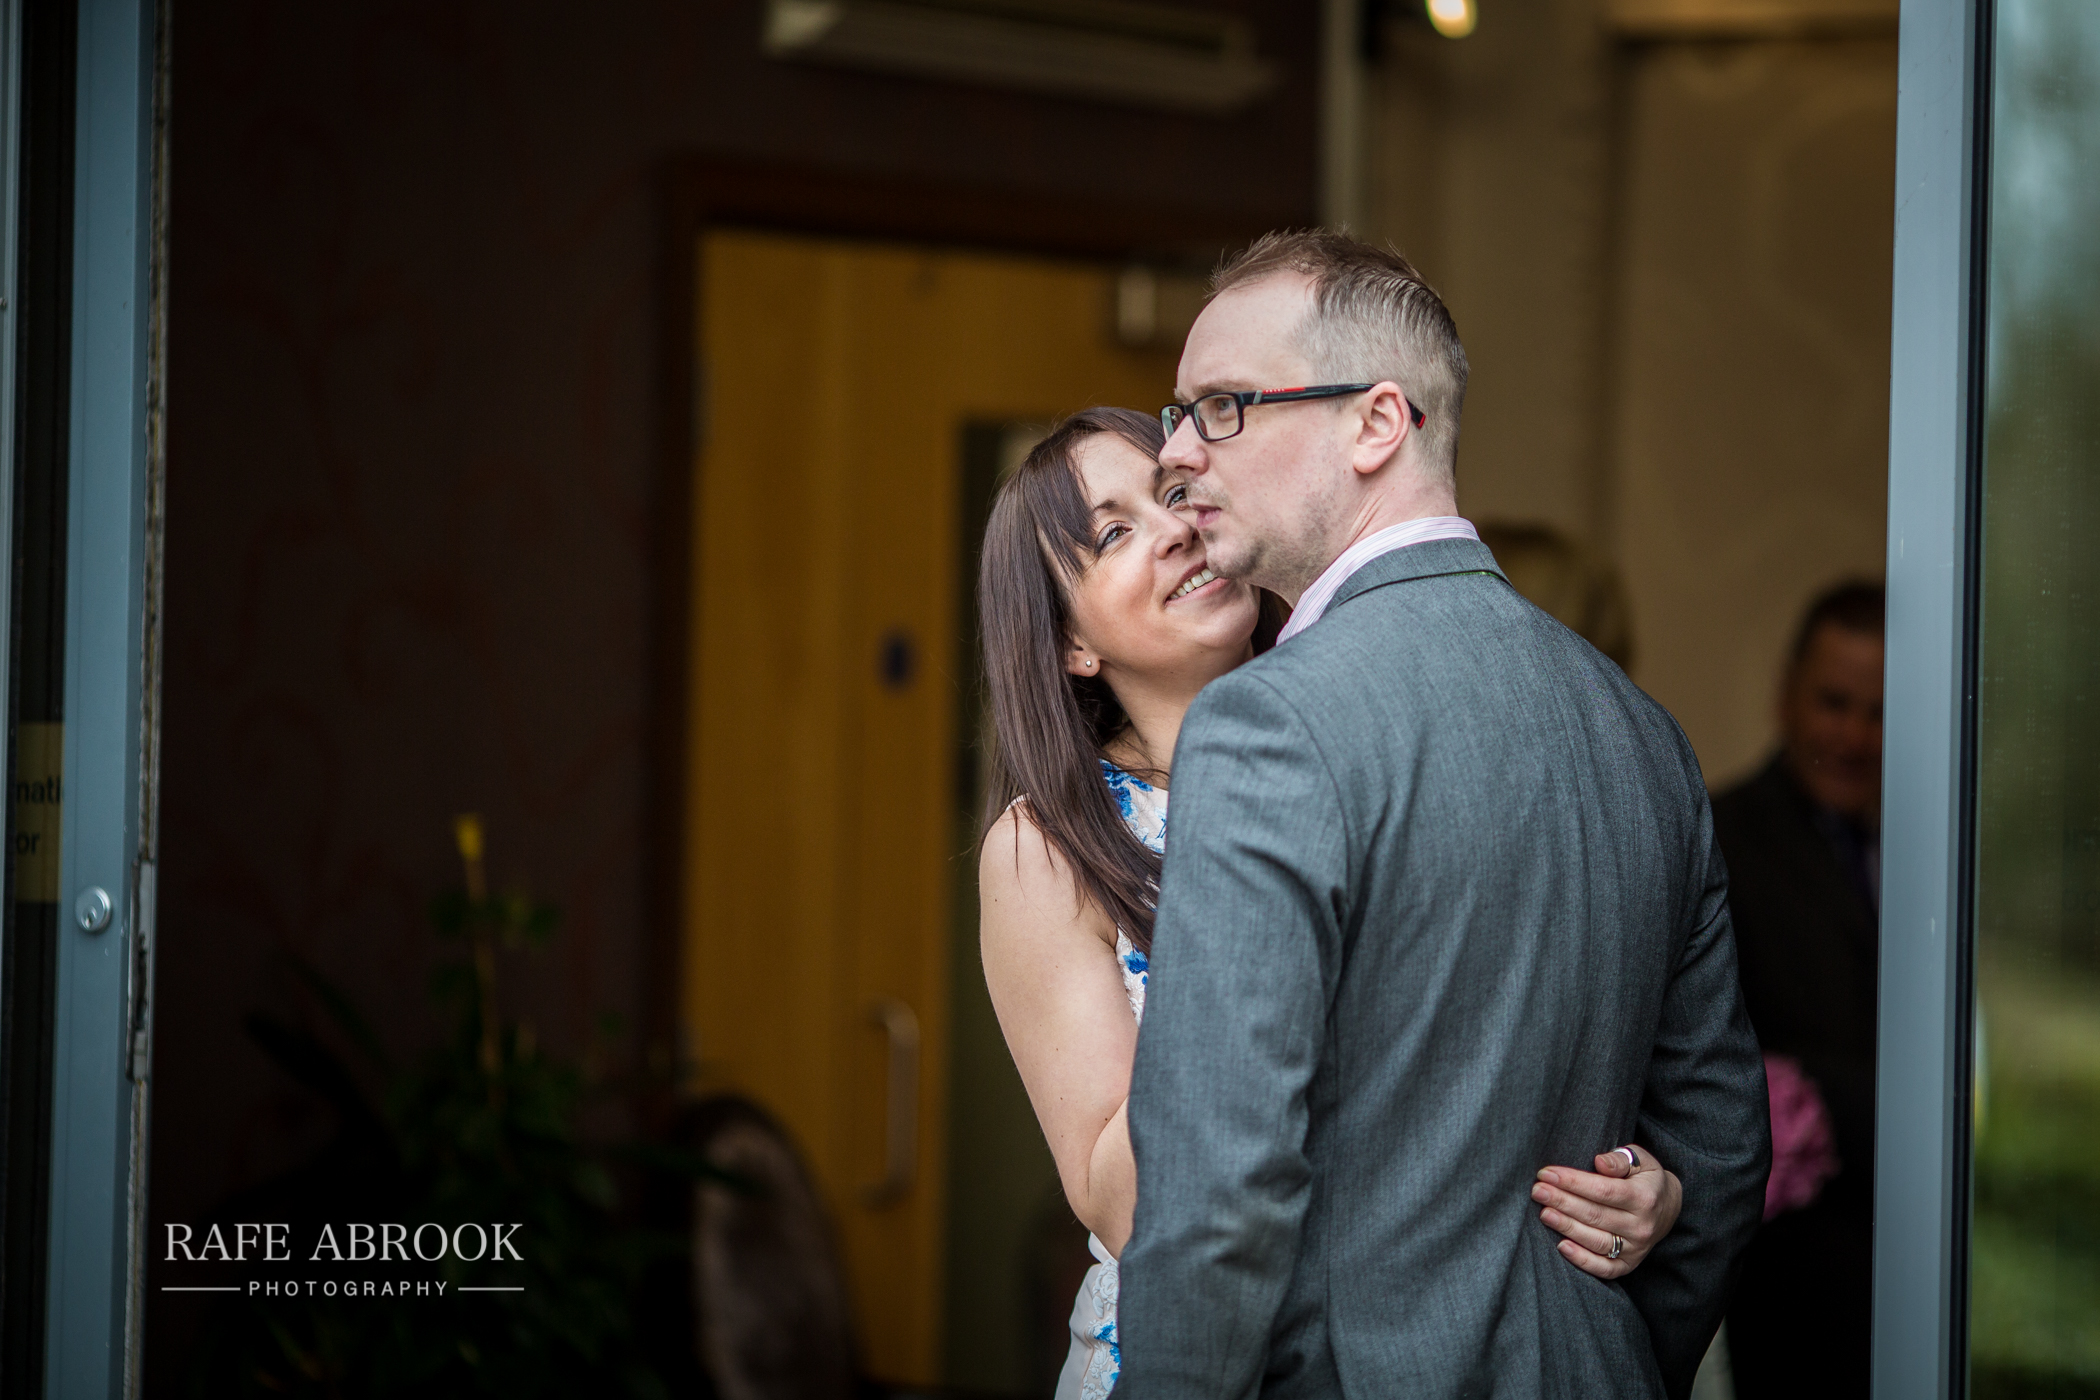 leigh & sarah wedding beeches solihull -1023.jpg